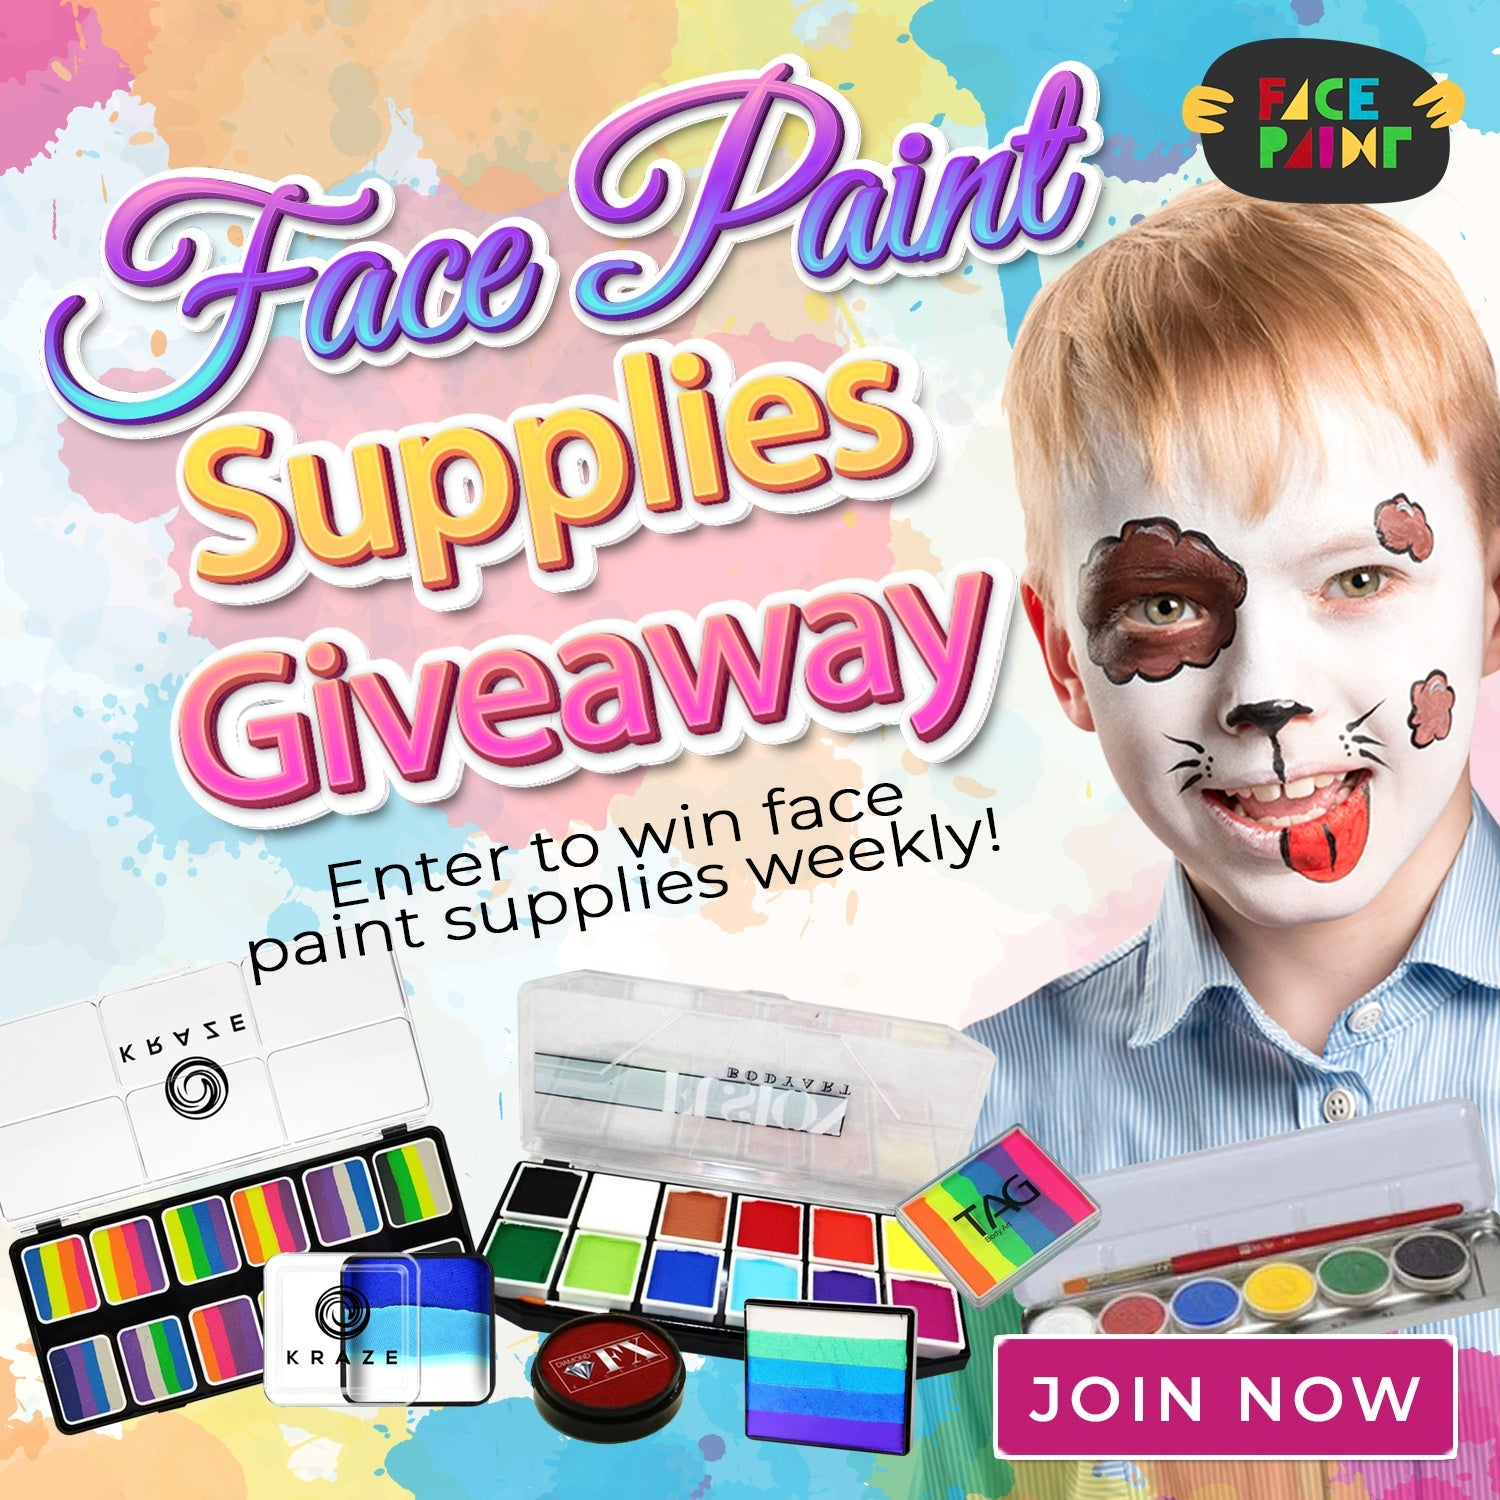 Face Paint Supplies Giveaway Winners for June 2020